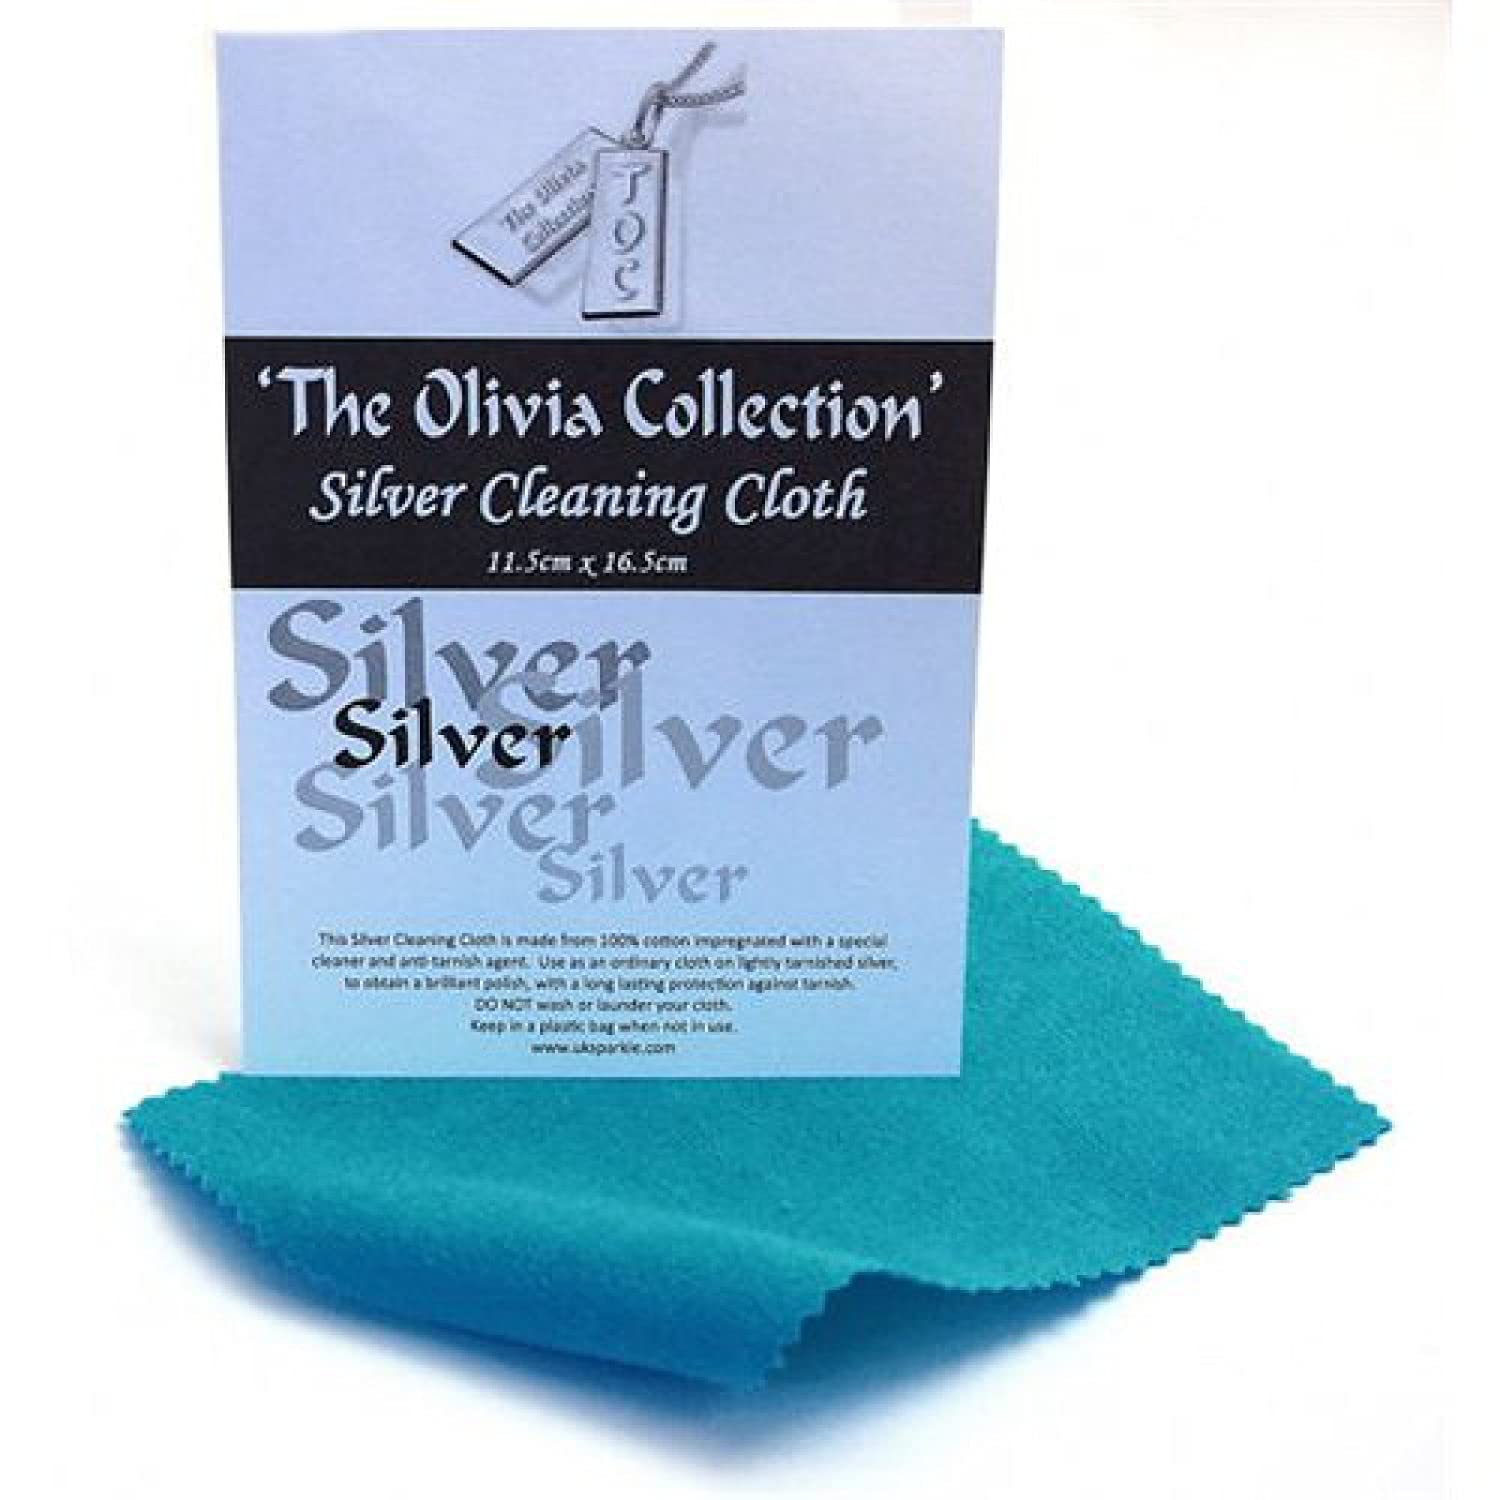 TOC Silver Jewellery Anti Tarnish Polishing Cloth X 1, Standard 115mm x 165mm The Olivia Collection SC191-nwl